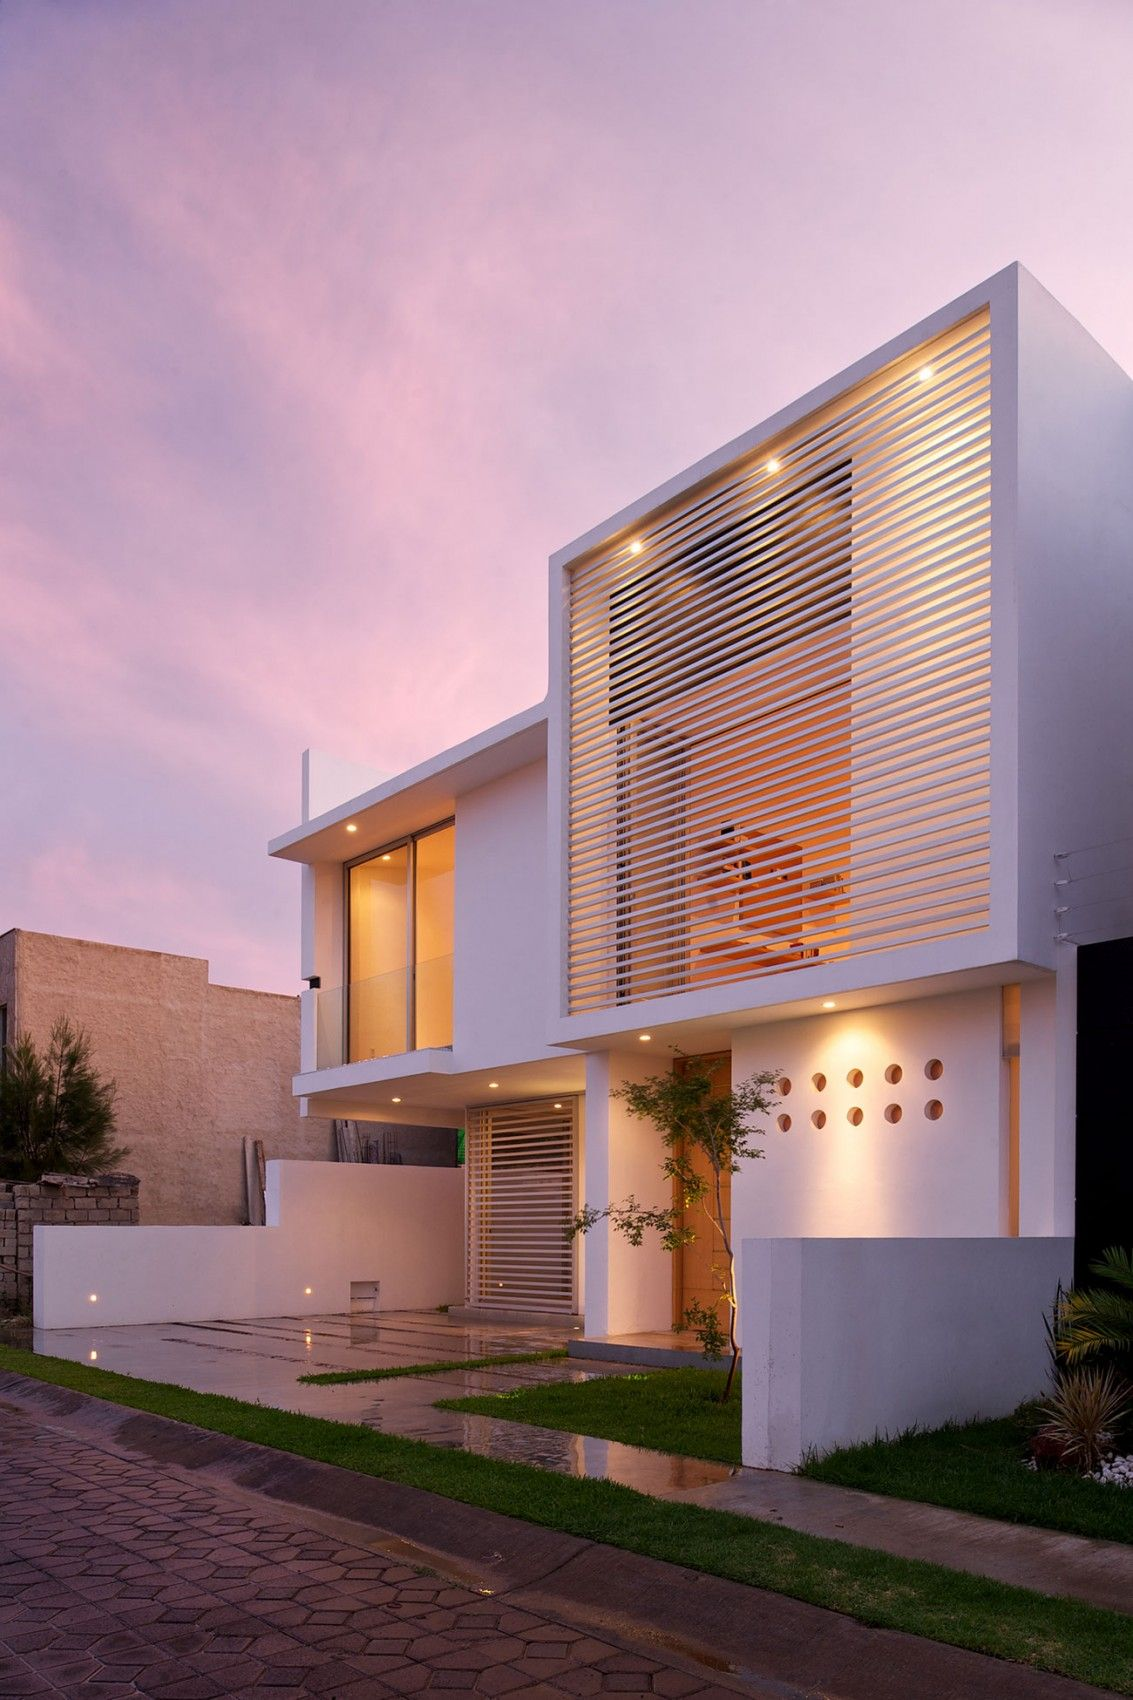 Decoration Villa Moderne Architectural Minimalism And Geometric Layouts Seth Navarrete